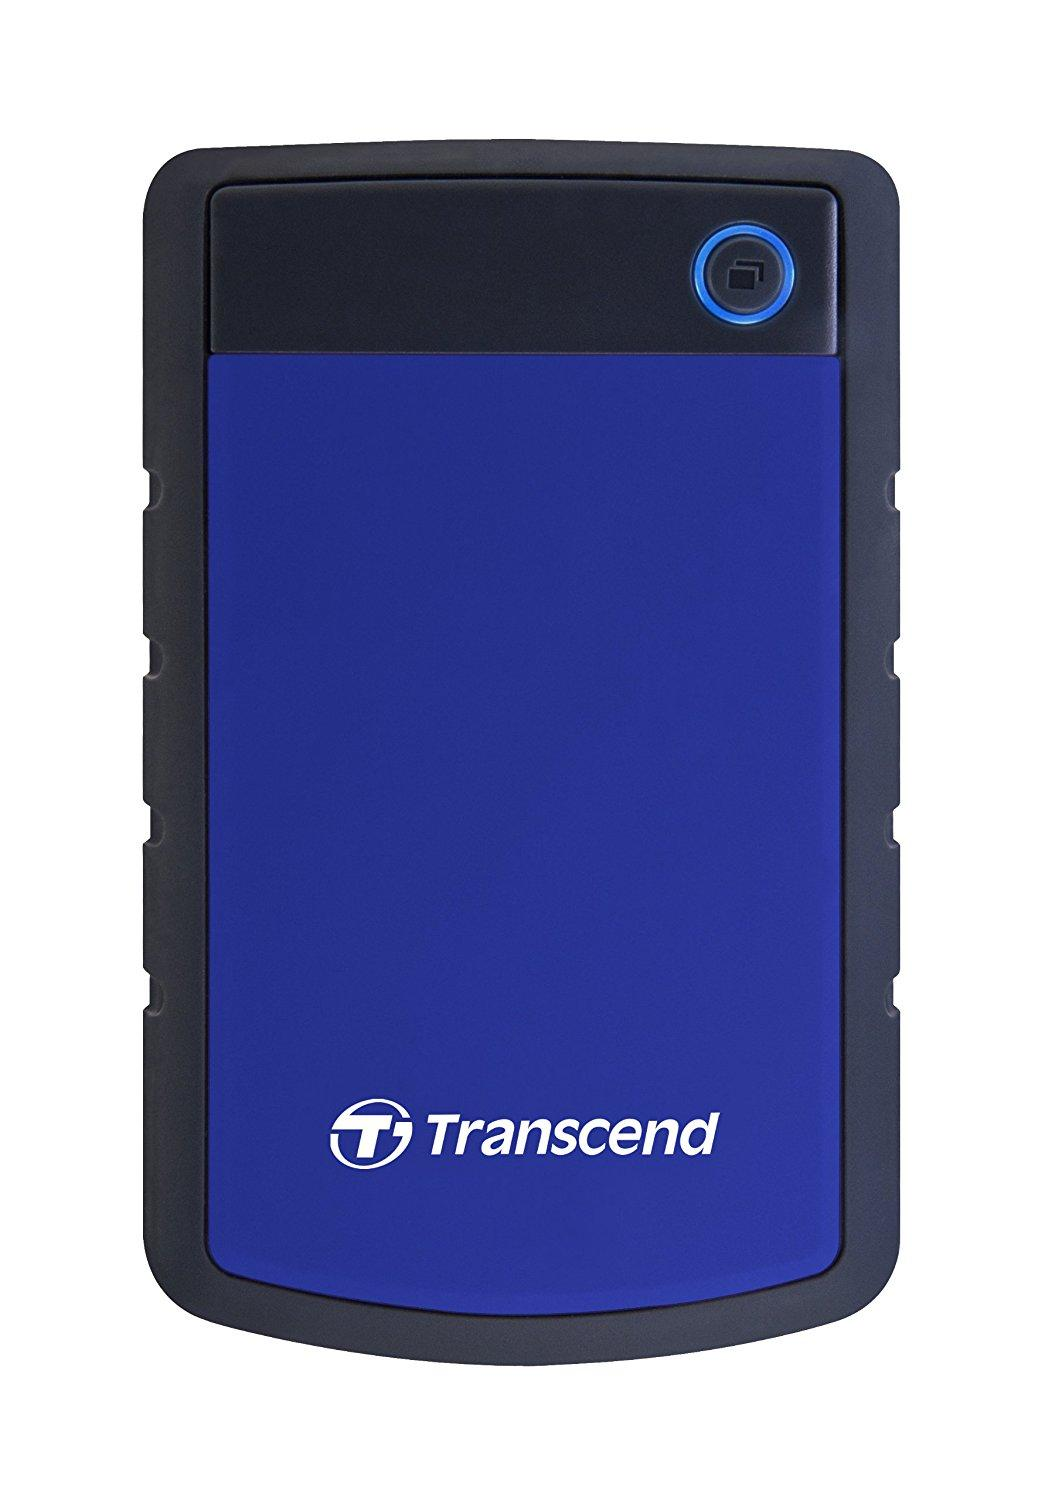 Transcend Online Store In Pakistan Rdf8 Usb 30 Card Reader Black 1tb Storejet 25h3 Military Drop Tested External Hard Drive